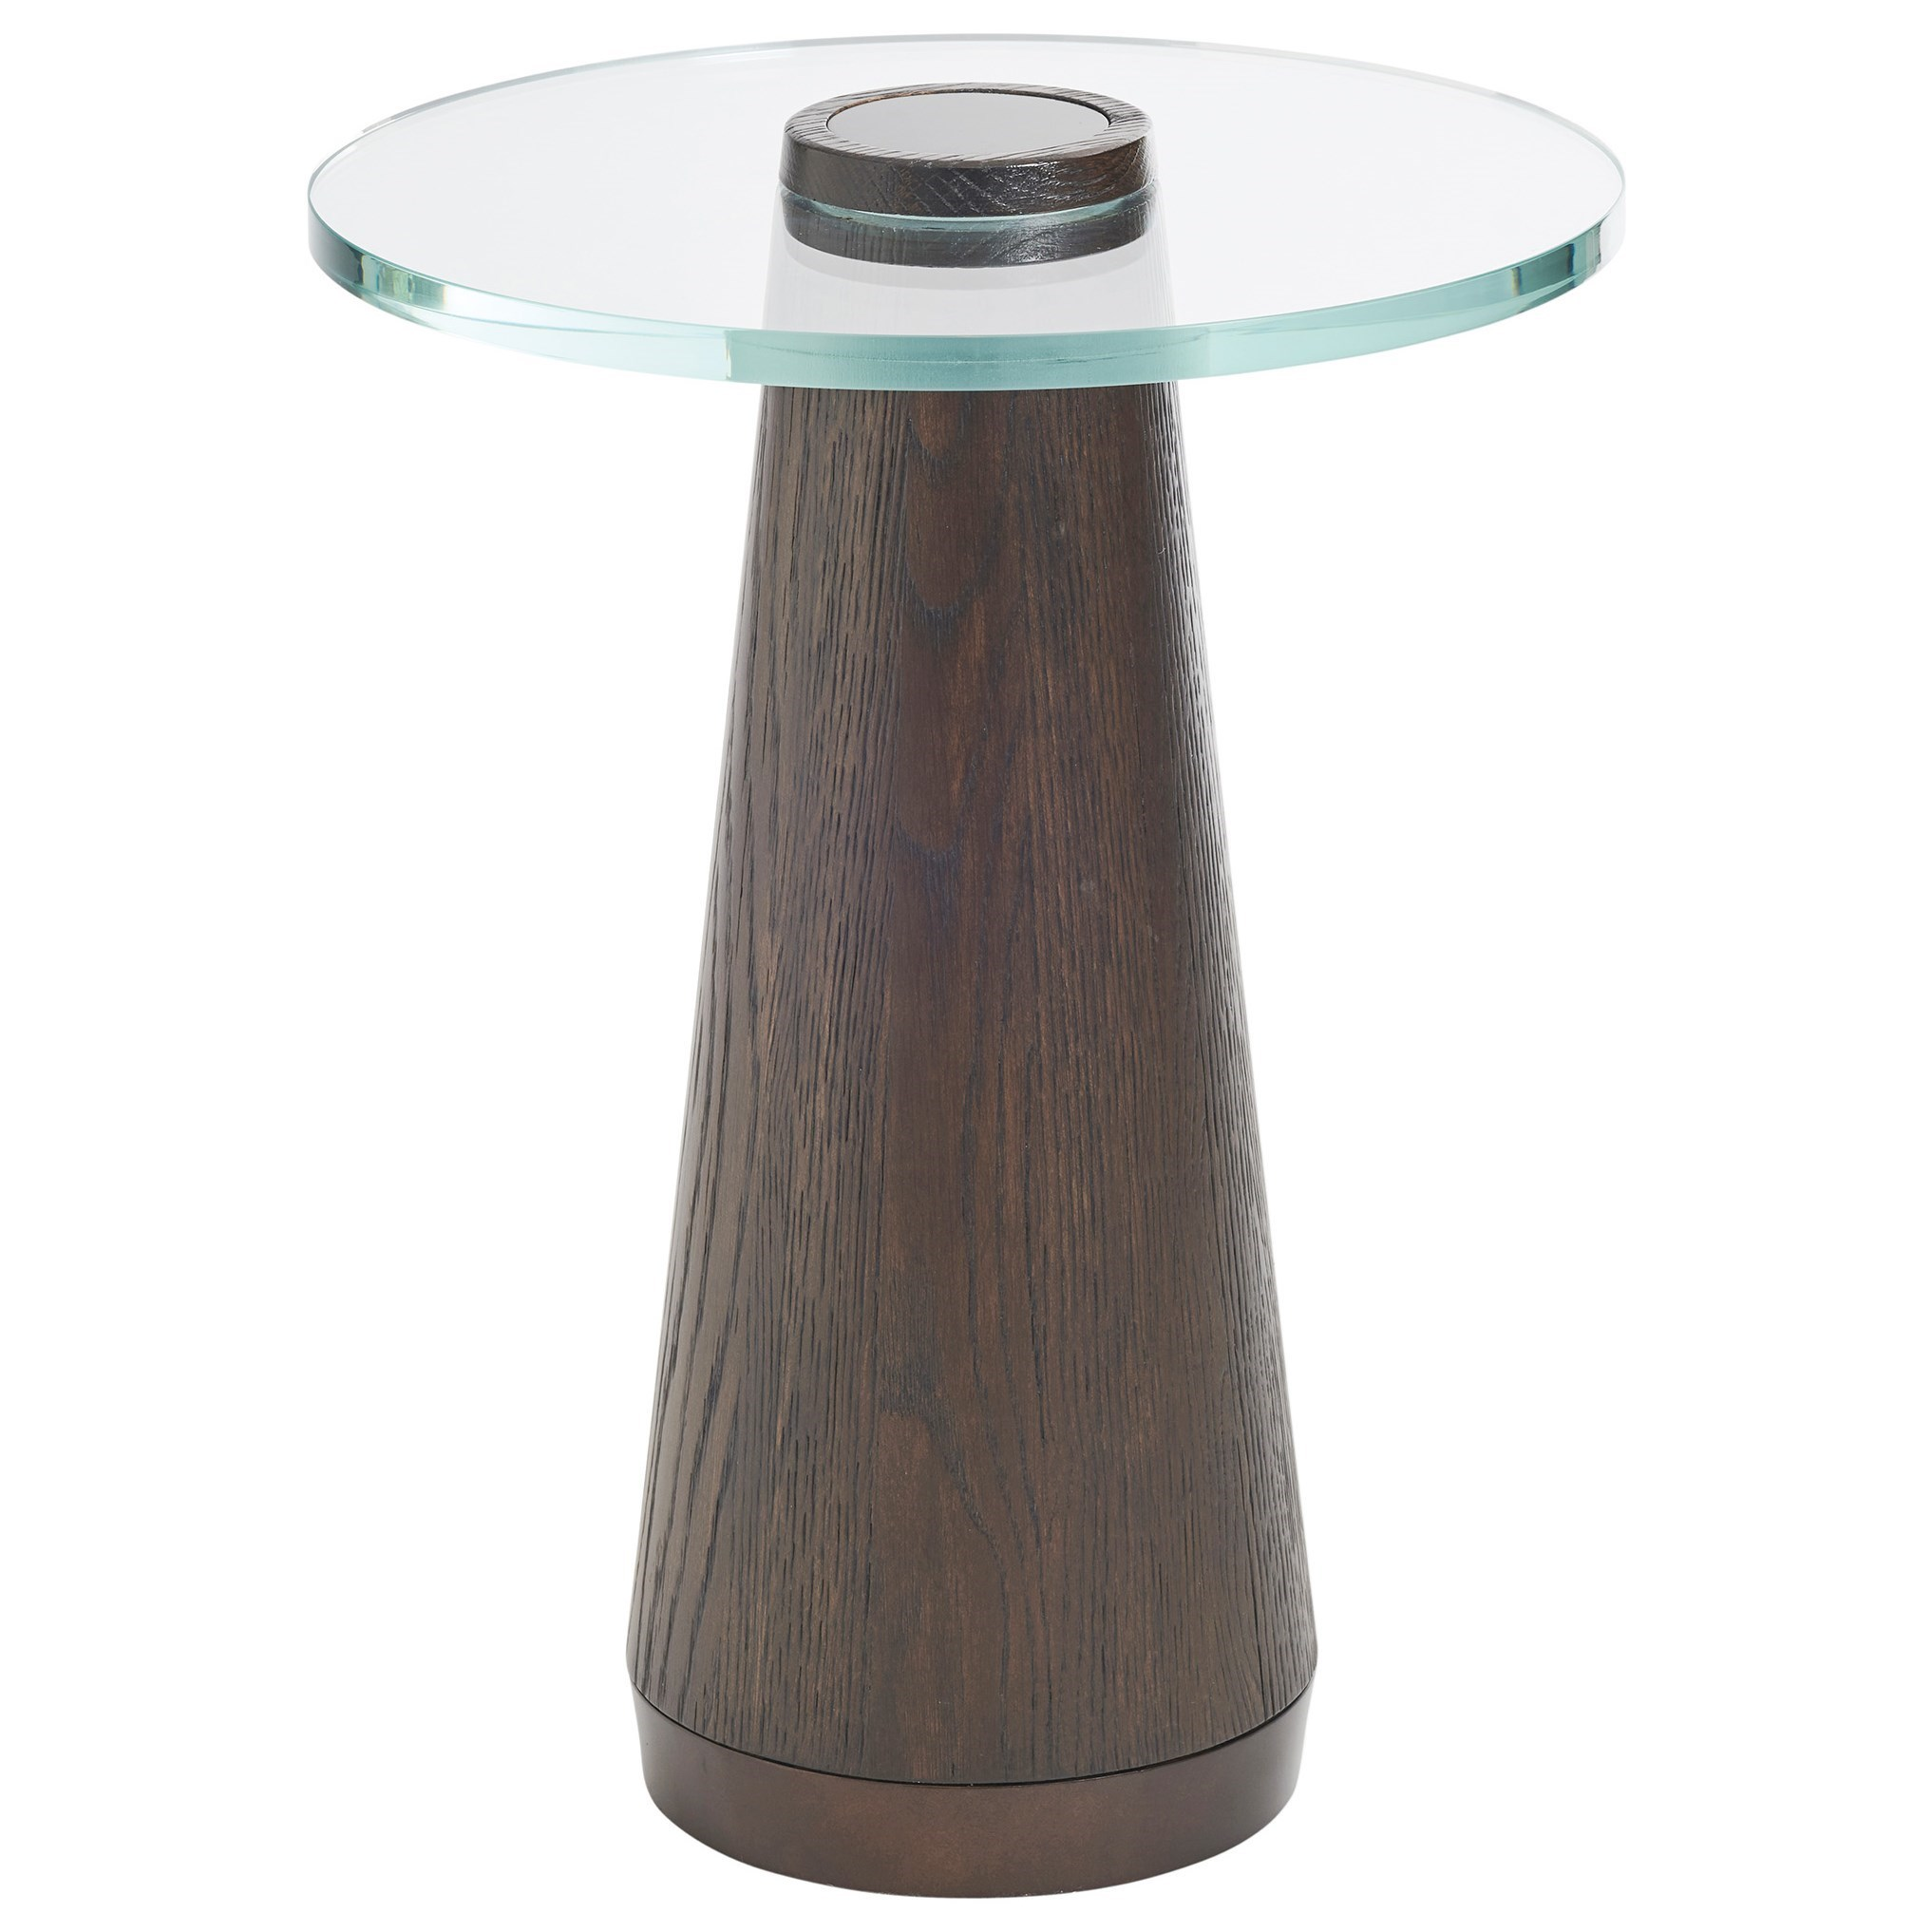 Park City Apex Accent Table by Barclay Butera at Baer's Furniture